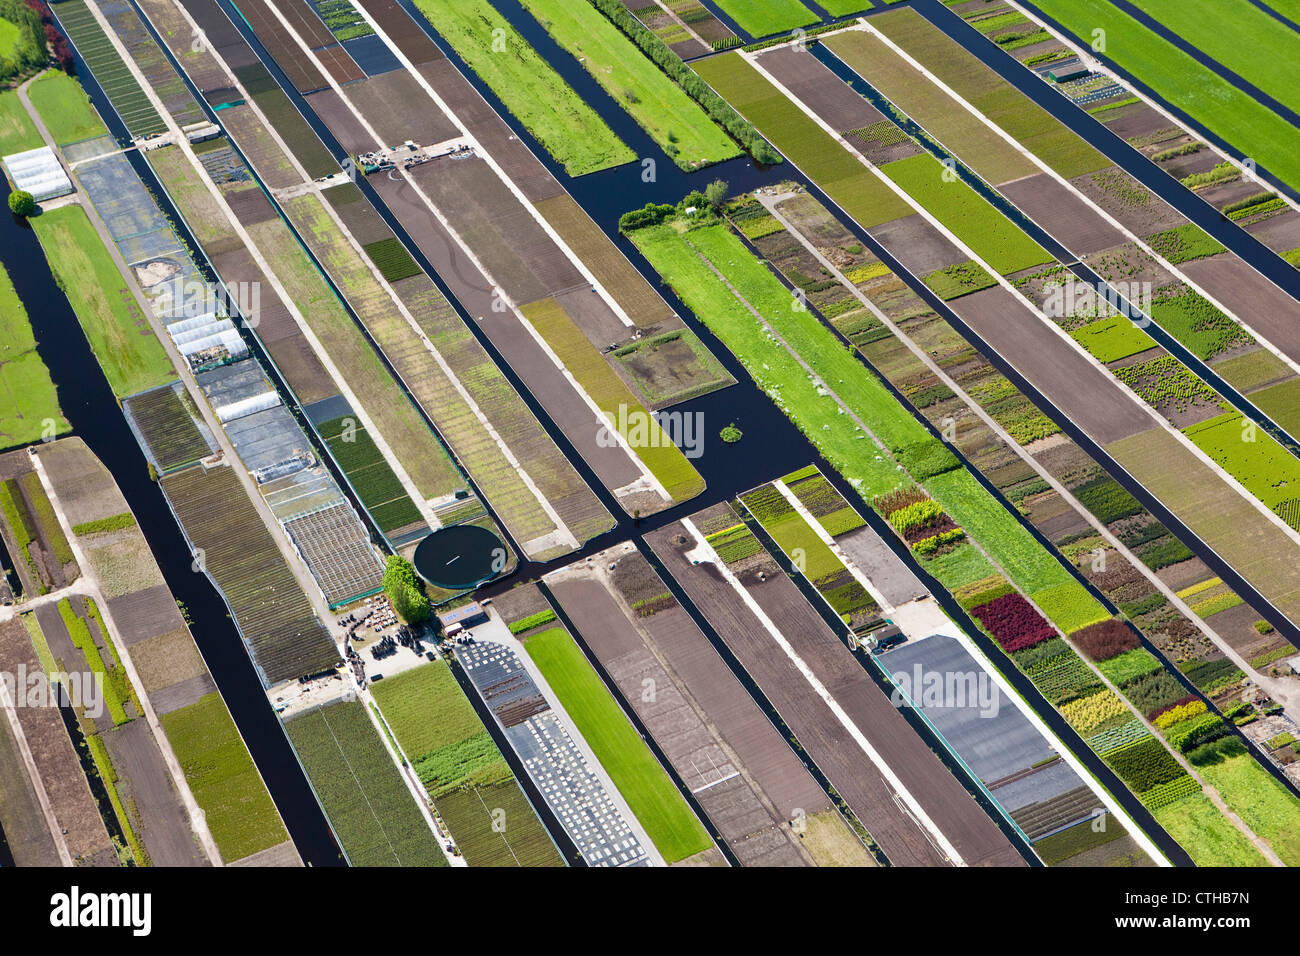 The Netherlands, Boskoop, Horticulture. Aerial. - Stock Image